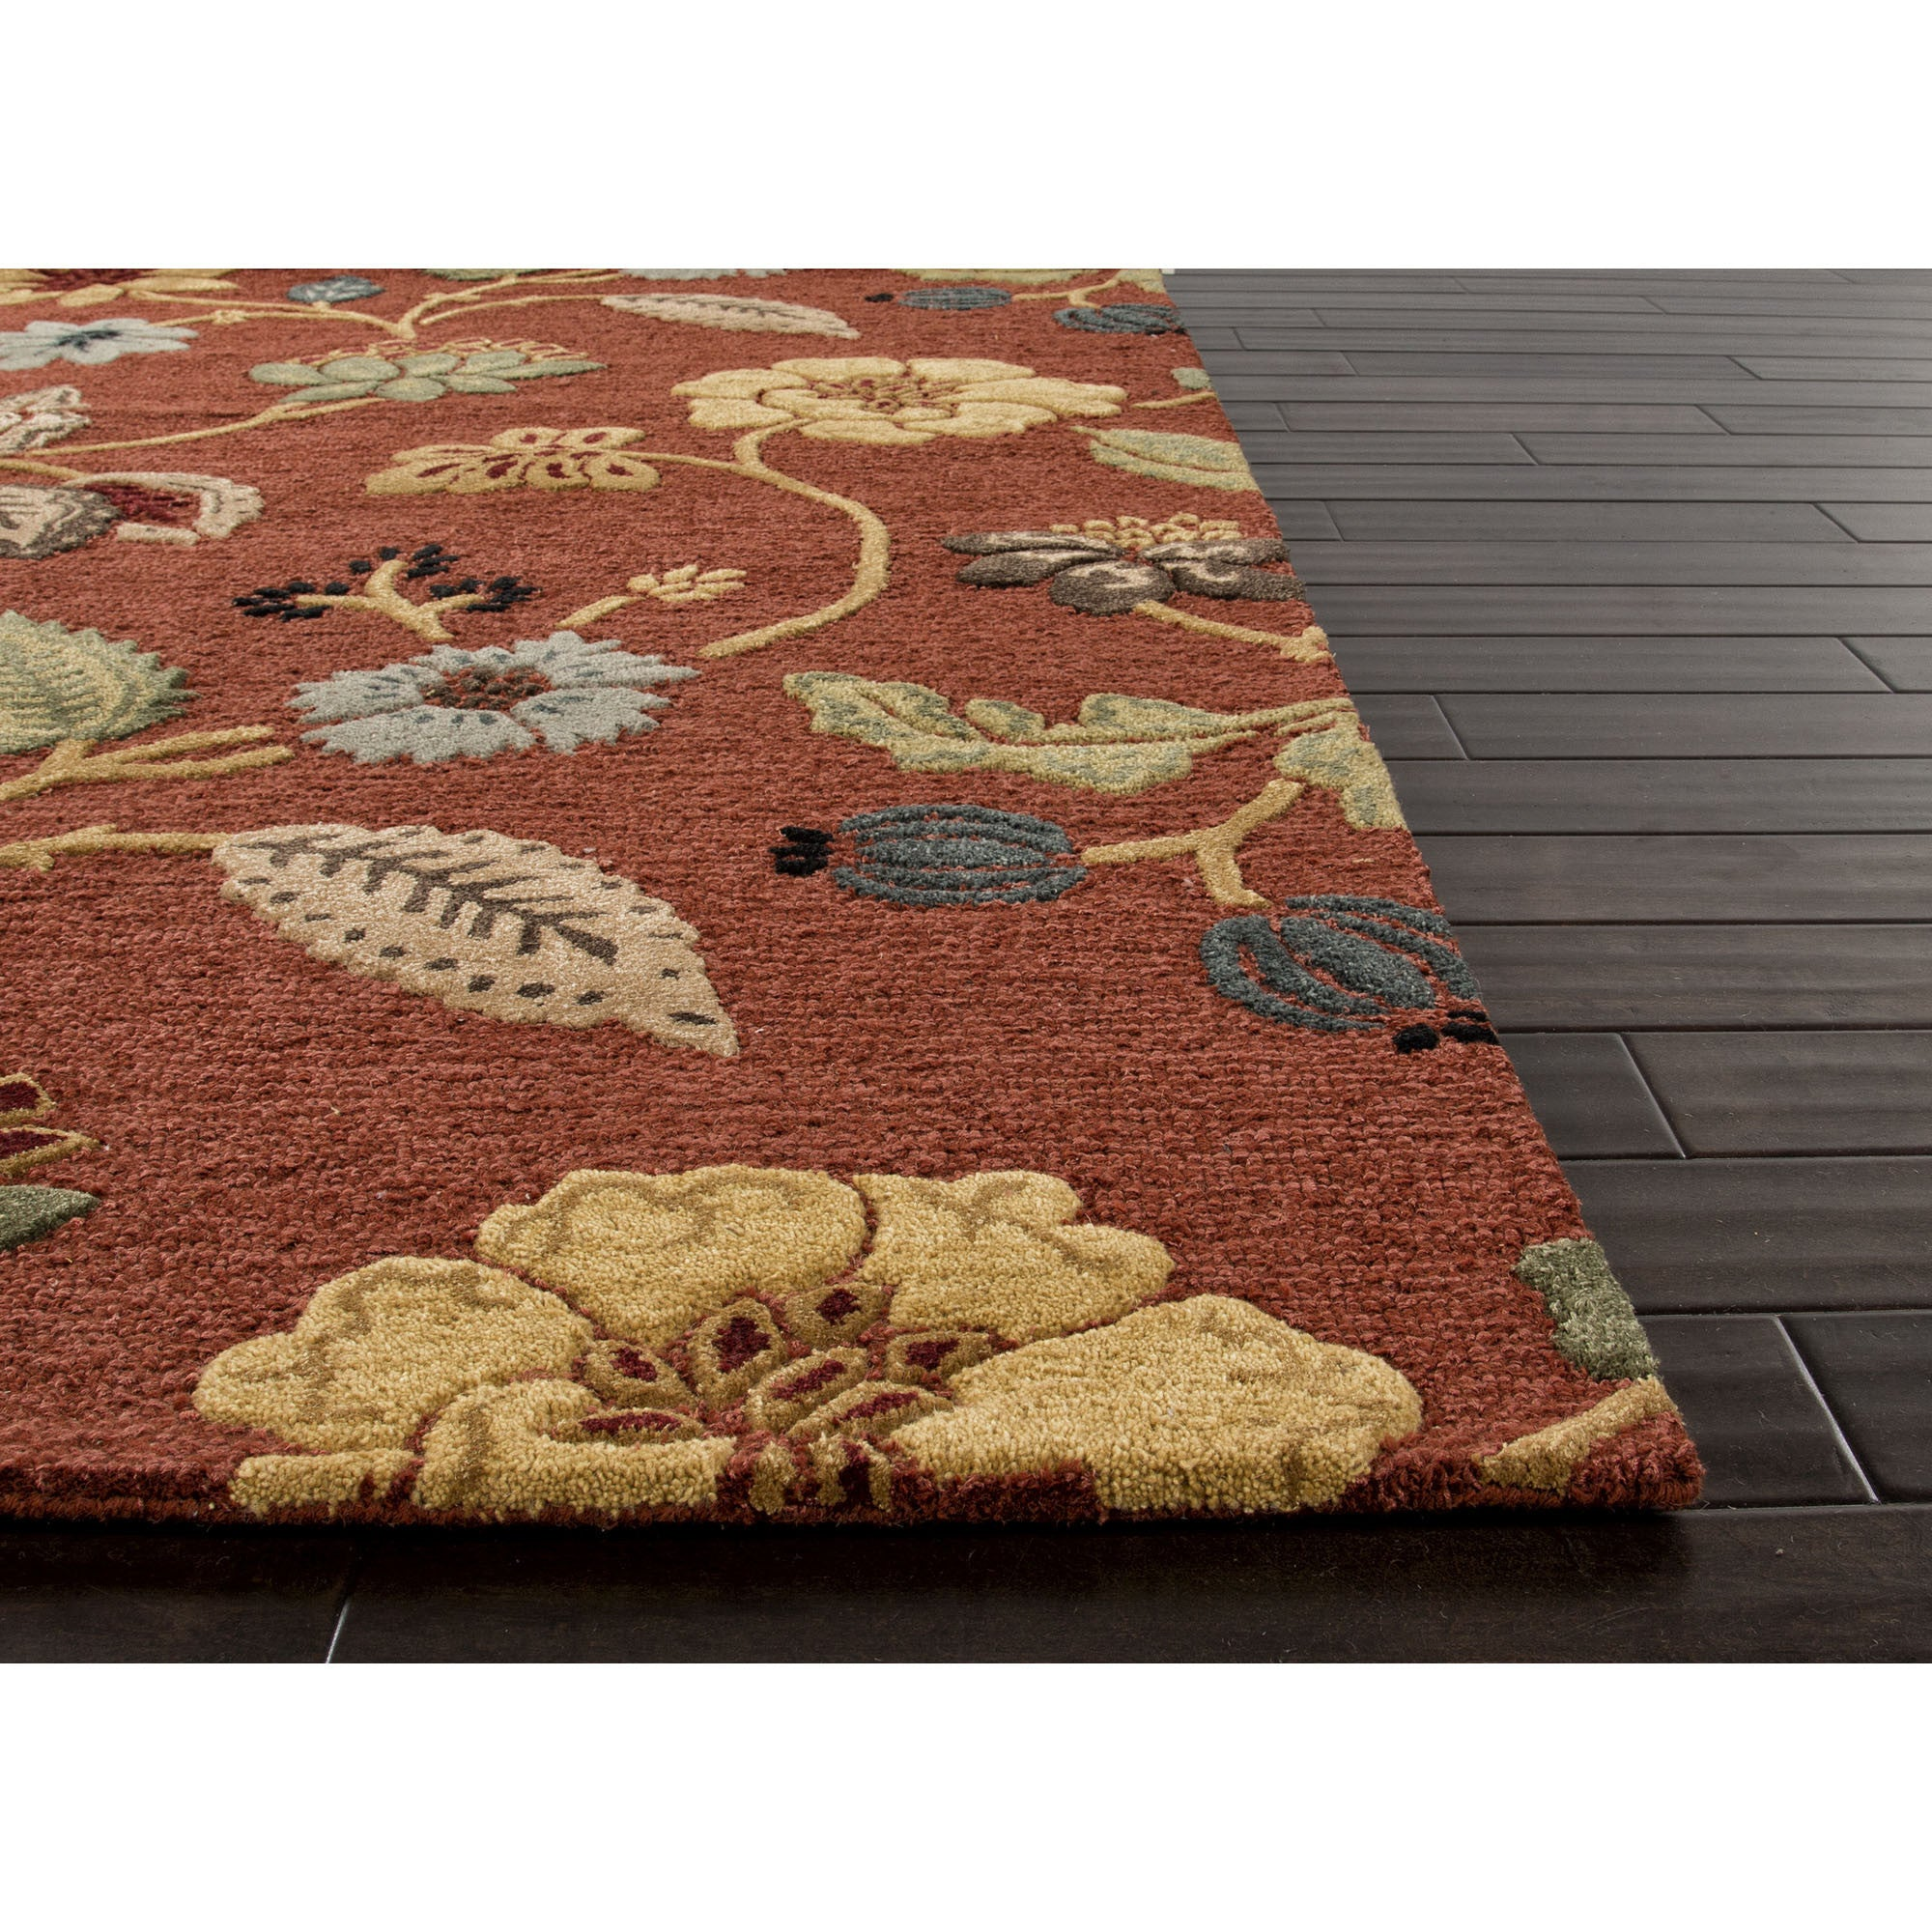 Jaipur rugs transitional floral pattern red multi wool for Red floral area rug